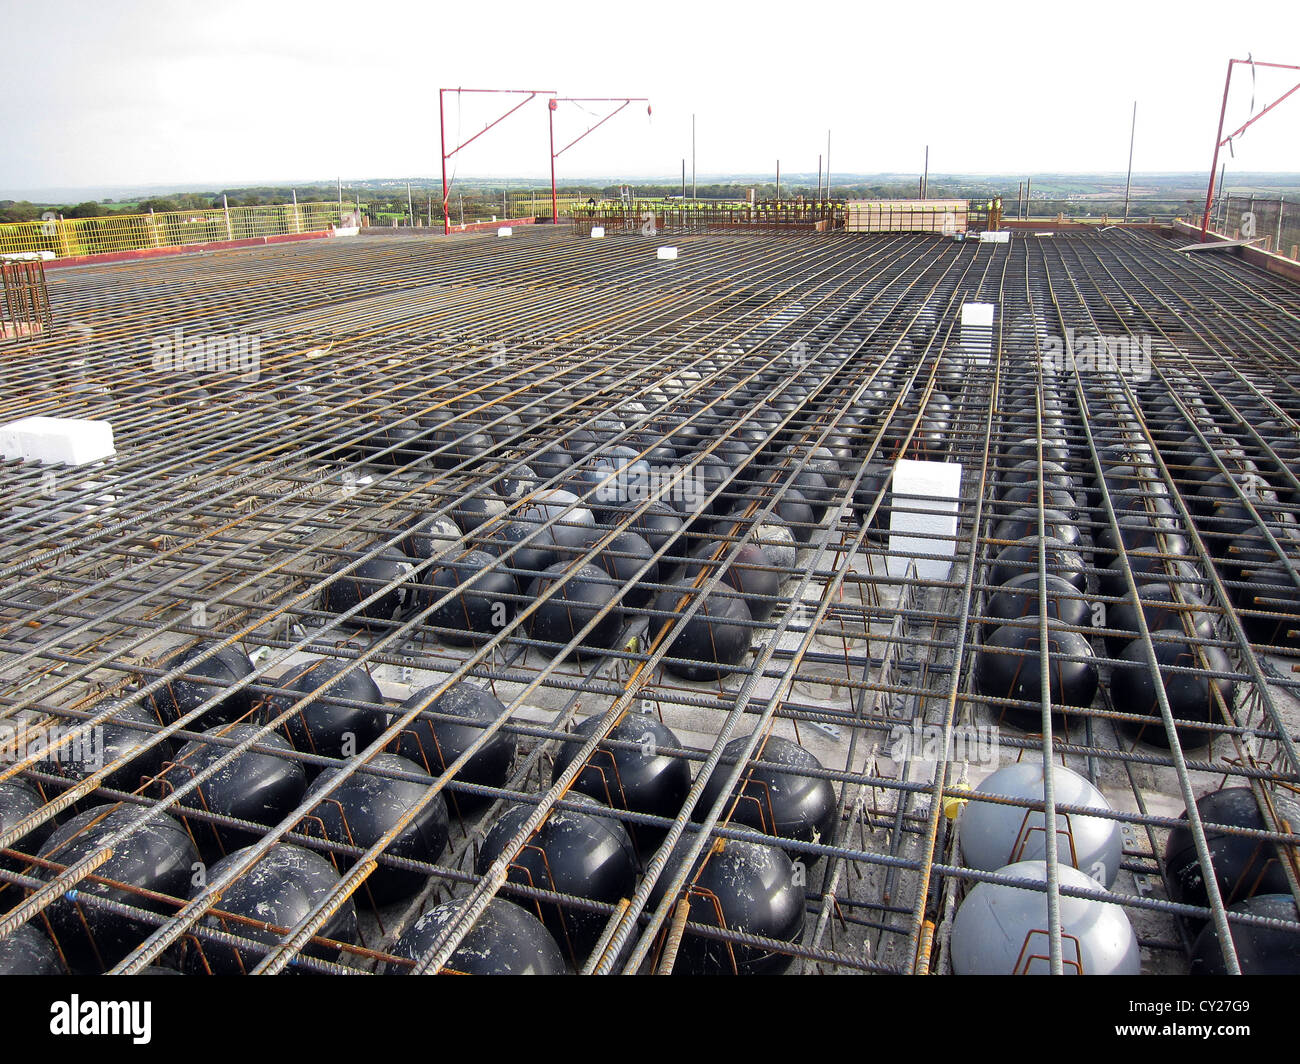 Construction Of A Concrete Slab Using Light Weight Balls